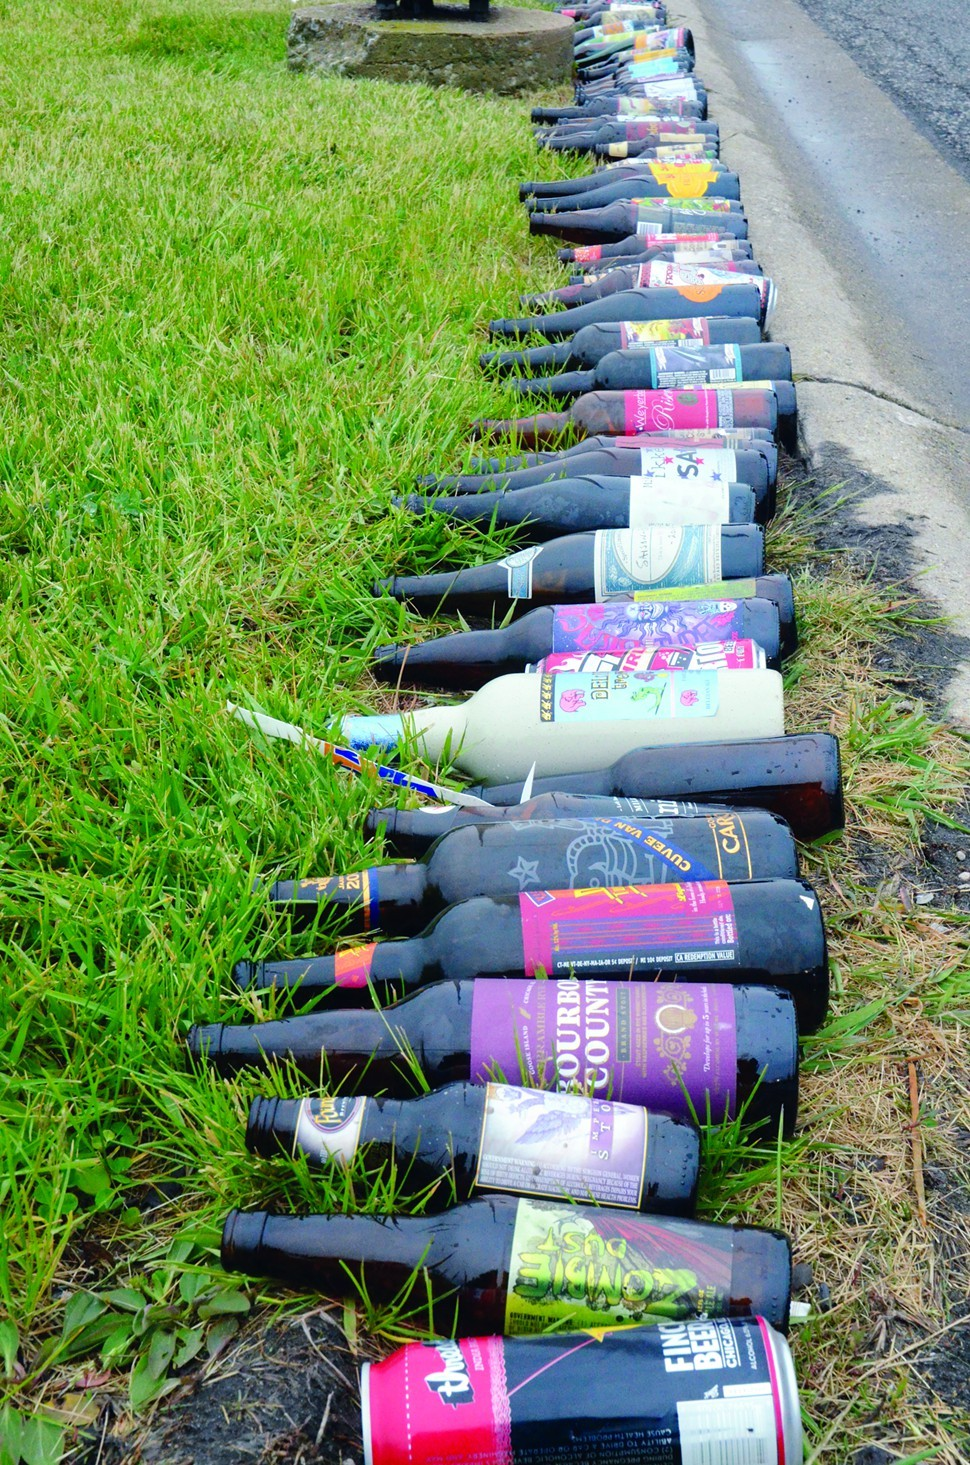 Empty bottles lined up by the side of the road during Dark Lord Day